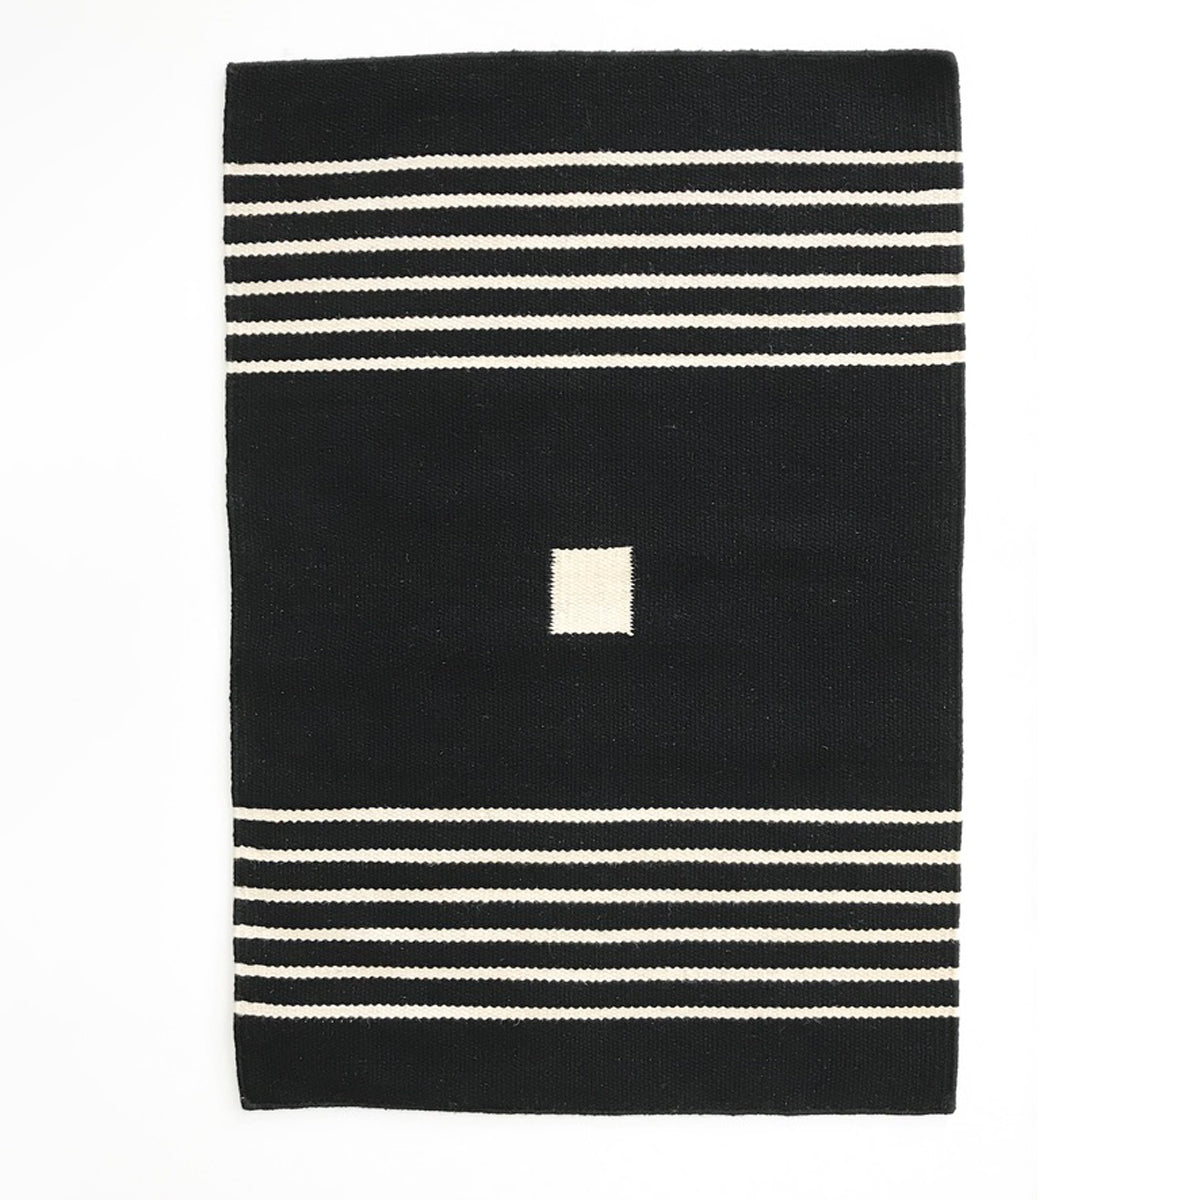 SHIPS NOW! BLACK FLAT WEAVE RUG